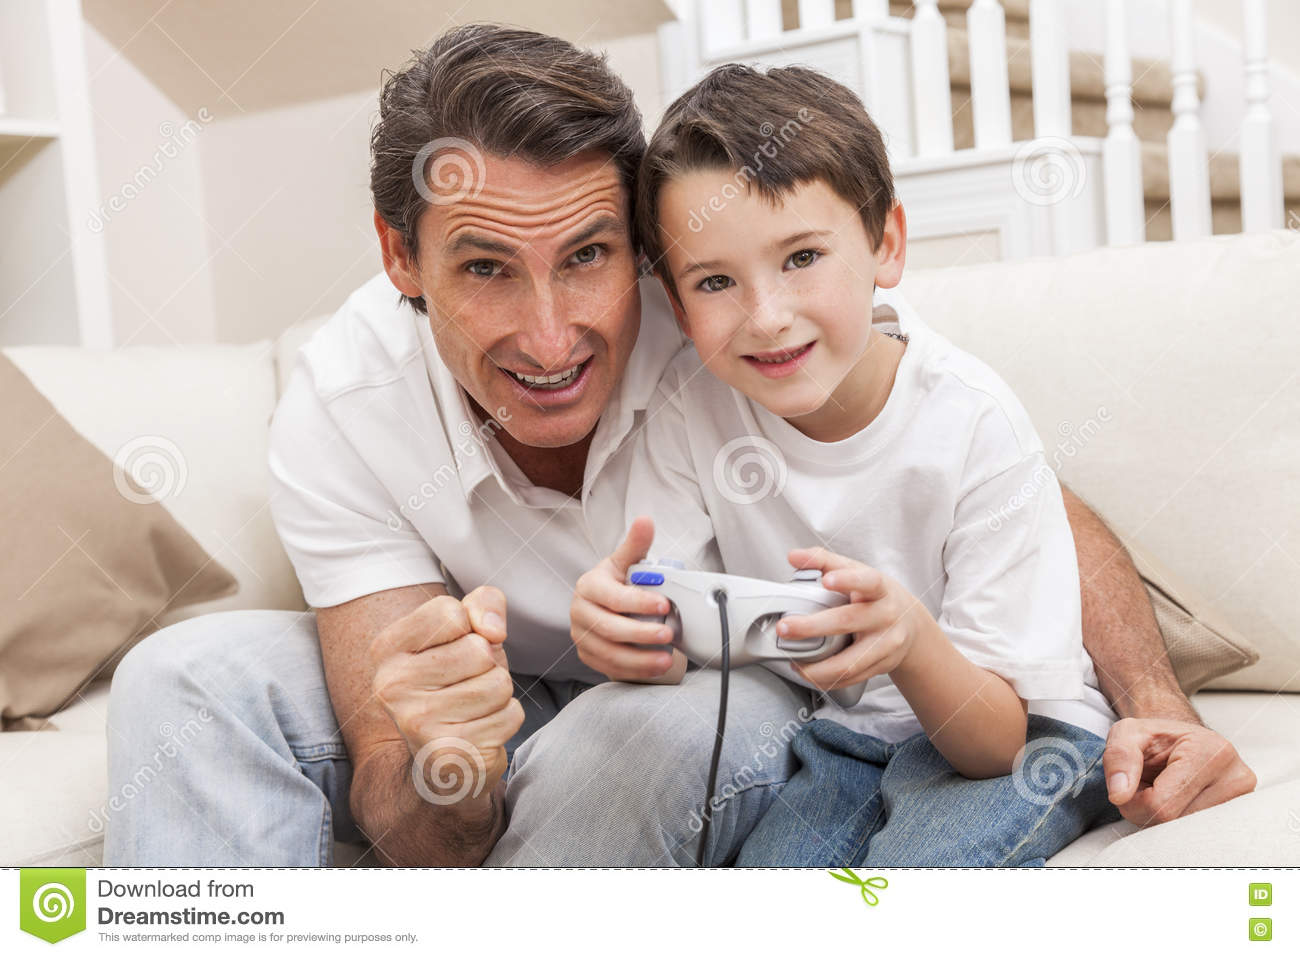 Download Man Boy Father Son Playing Computer Video Console Game Stock Photo - Image of game, jeans: 71496298